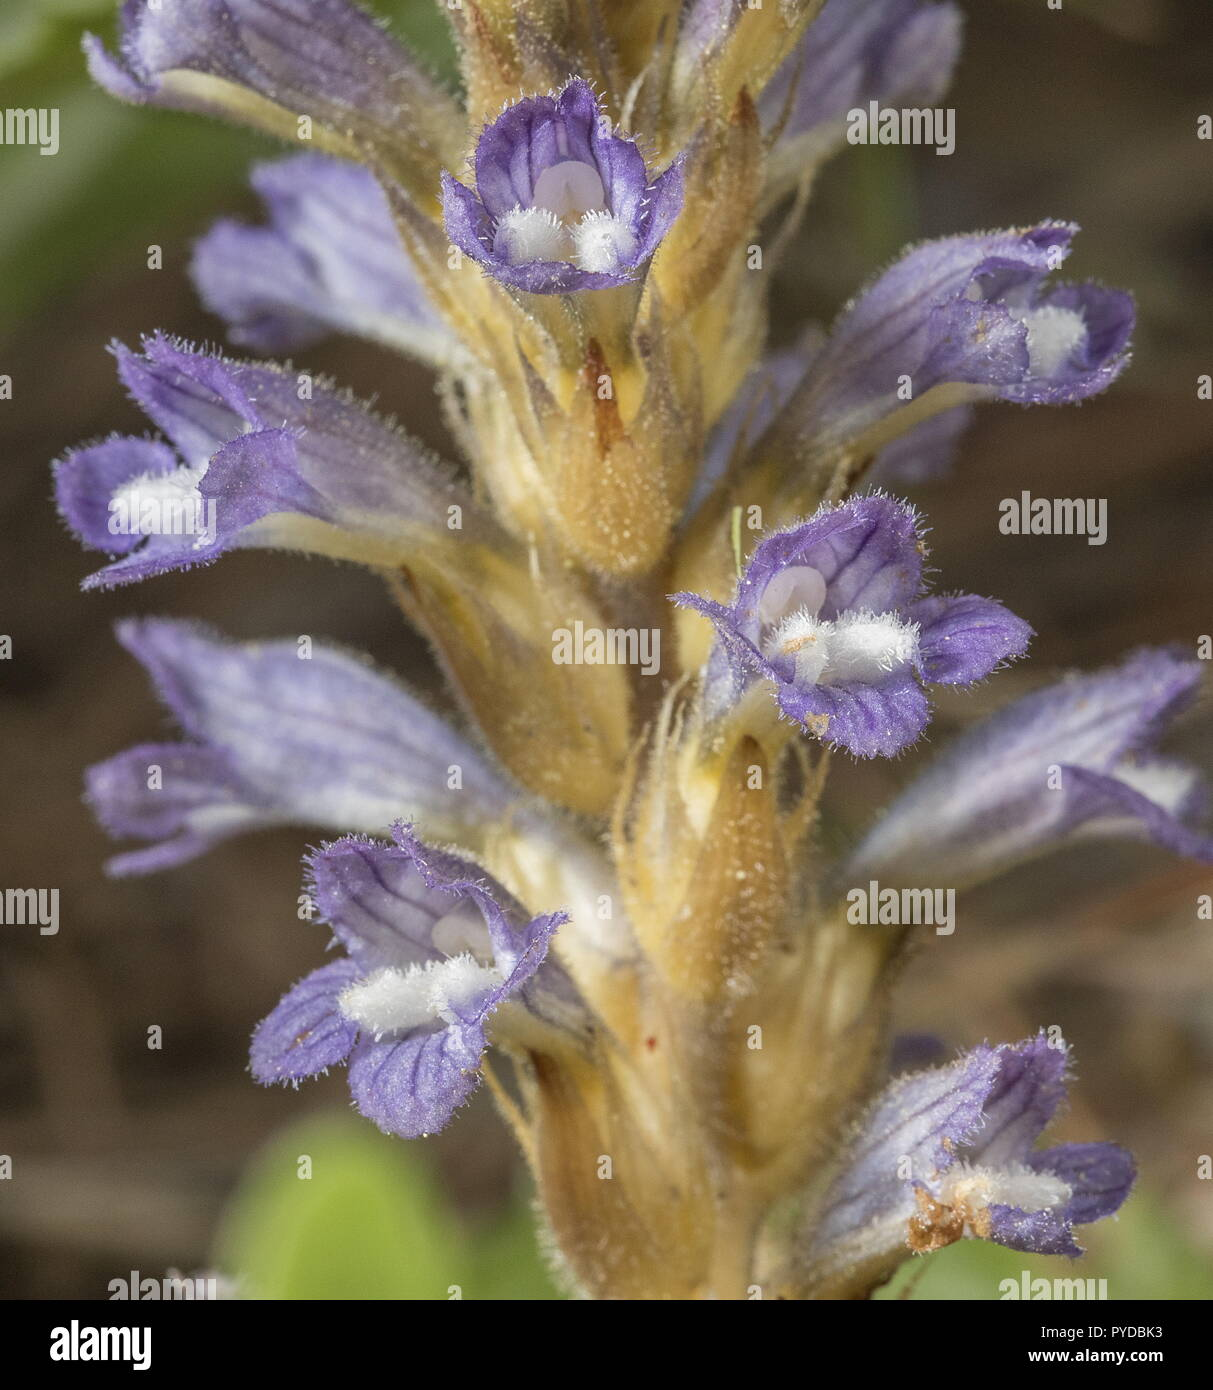 Branched broomrape, Orobanche ramosa, in flower. Parasite on Oxalis. Rhodes. Stock Photo